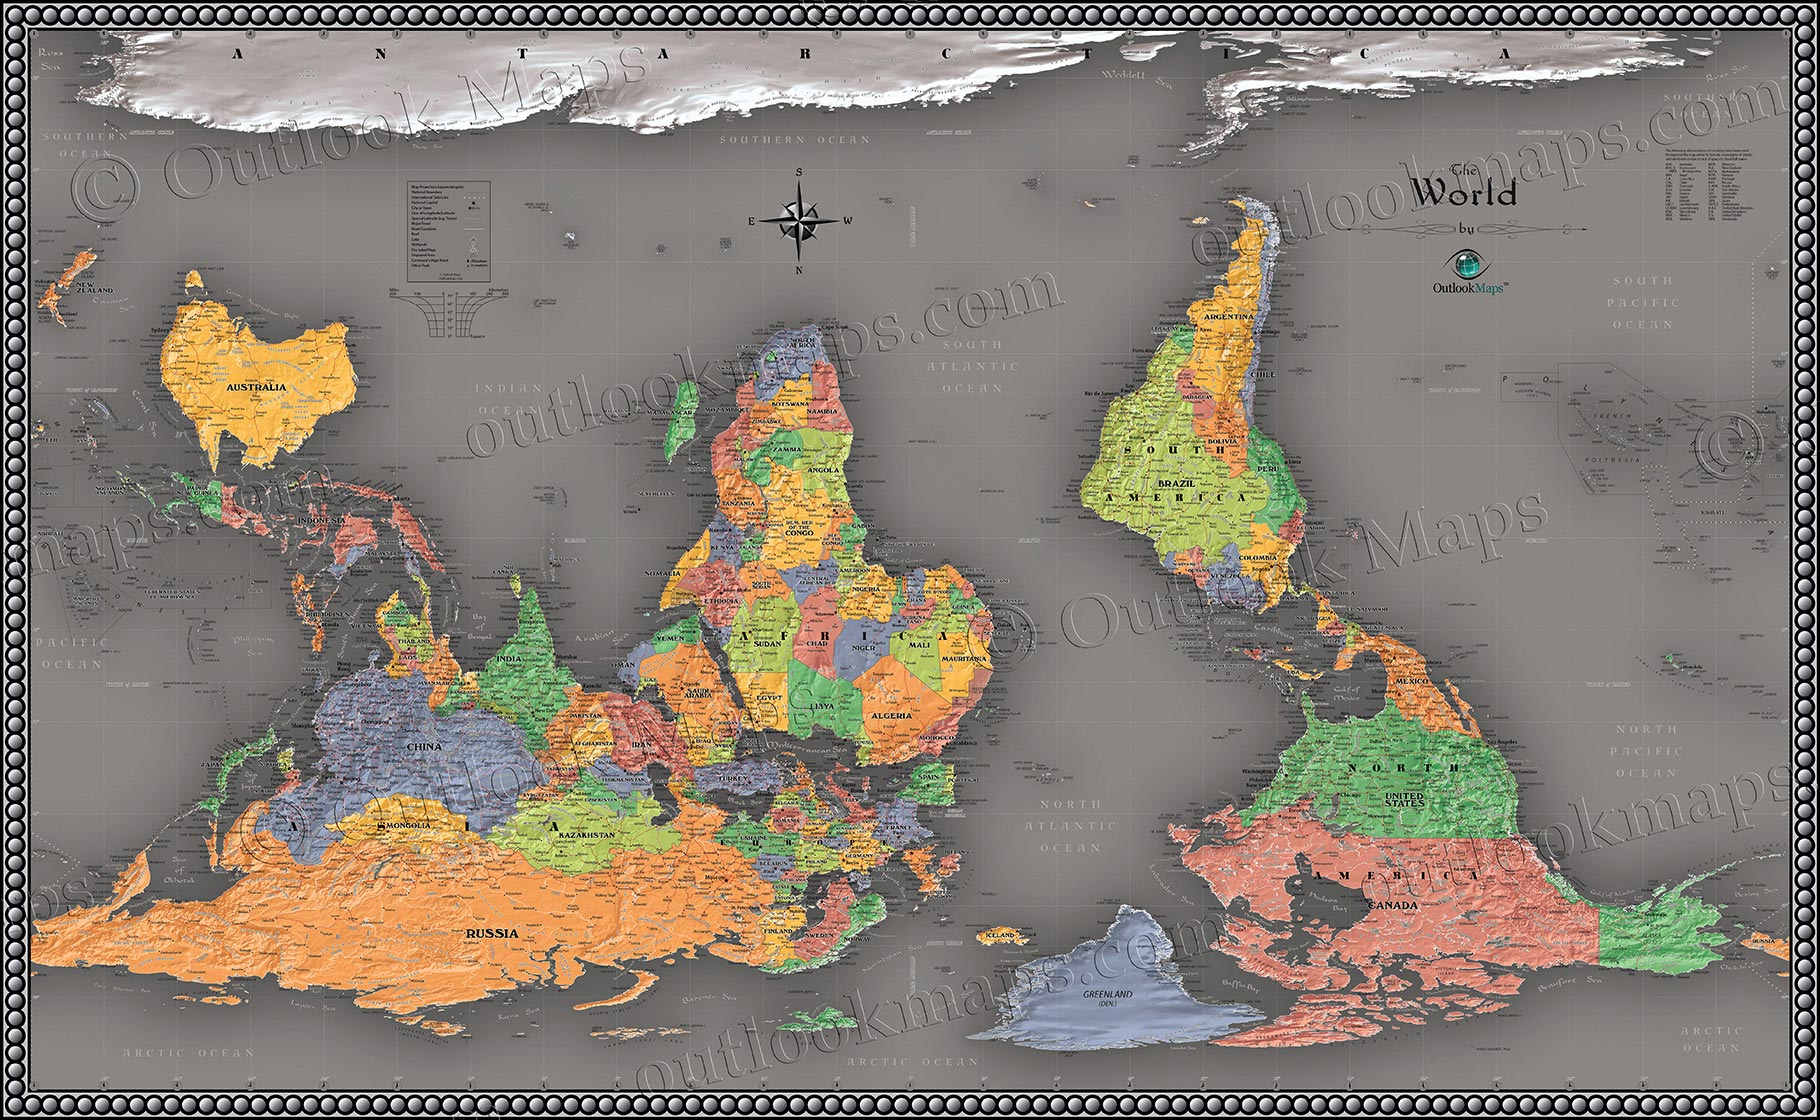 Cool color upside down world map reversed map cool color upside down map of the world gumiabroncs Images